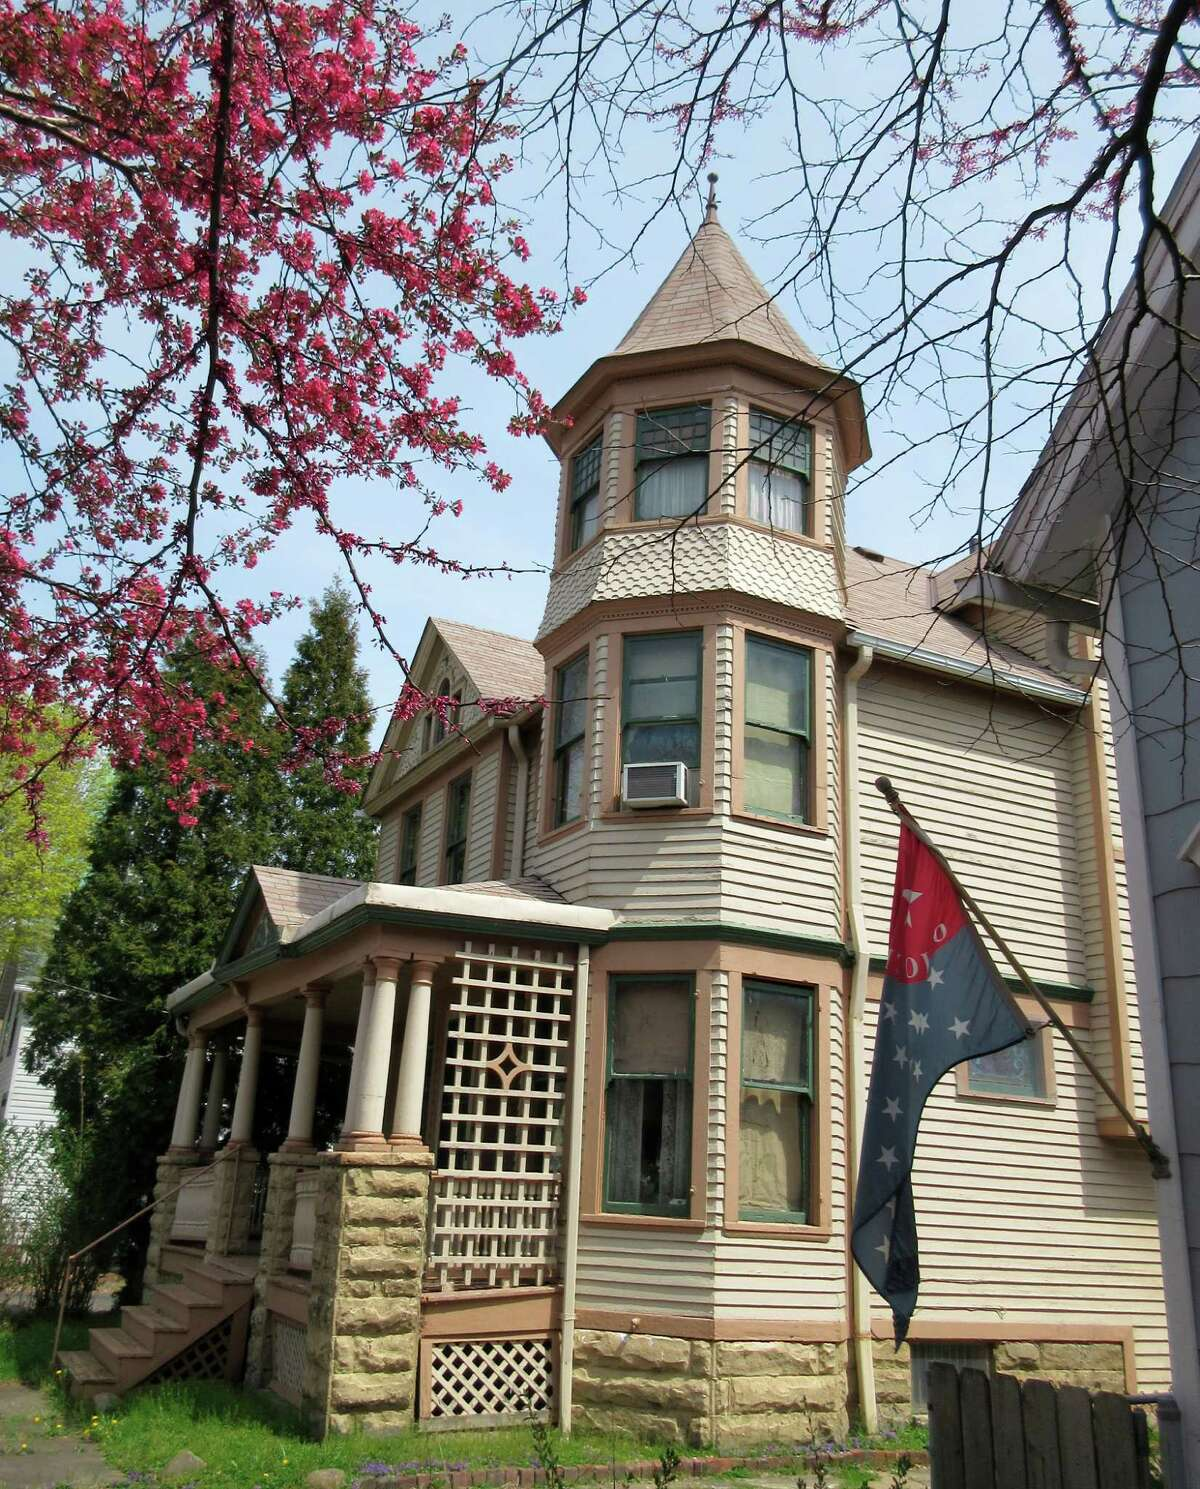 While Ohio City's commercial strip features a booming dining scene with some 40 eateries, its historic district also offers quiet residential streets lined with beautifully restored Victorian homes sporting turrets, columned front porches and other distinctive architectural features.